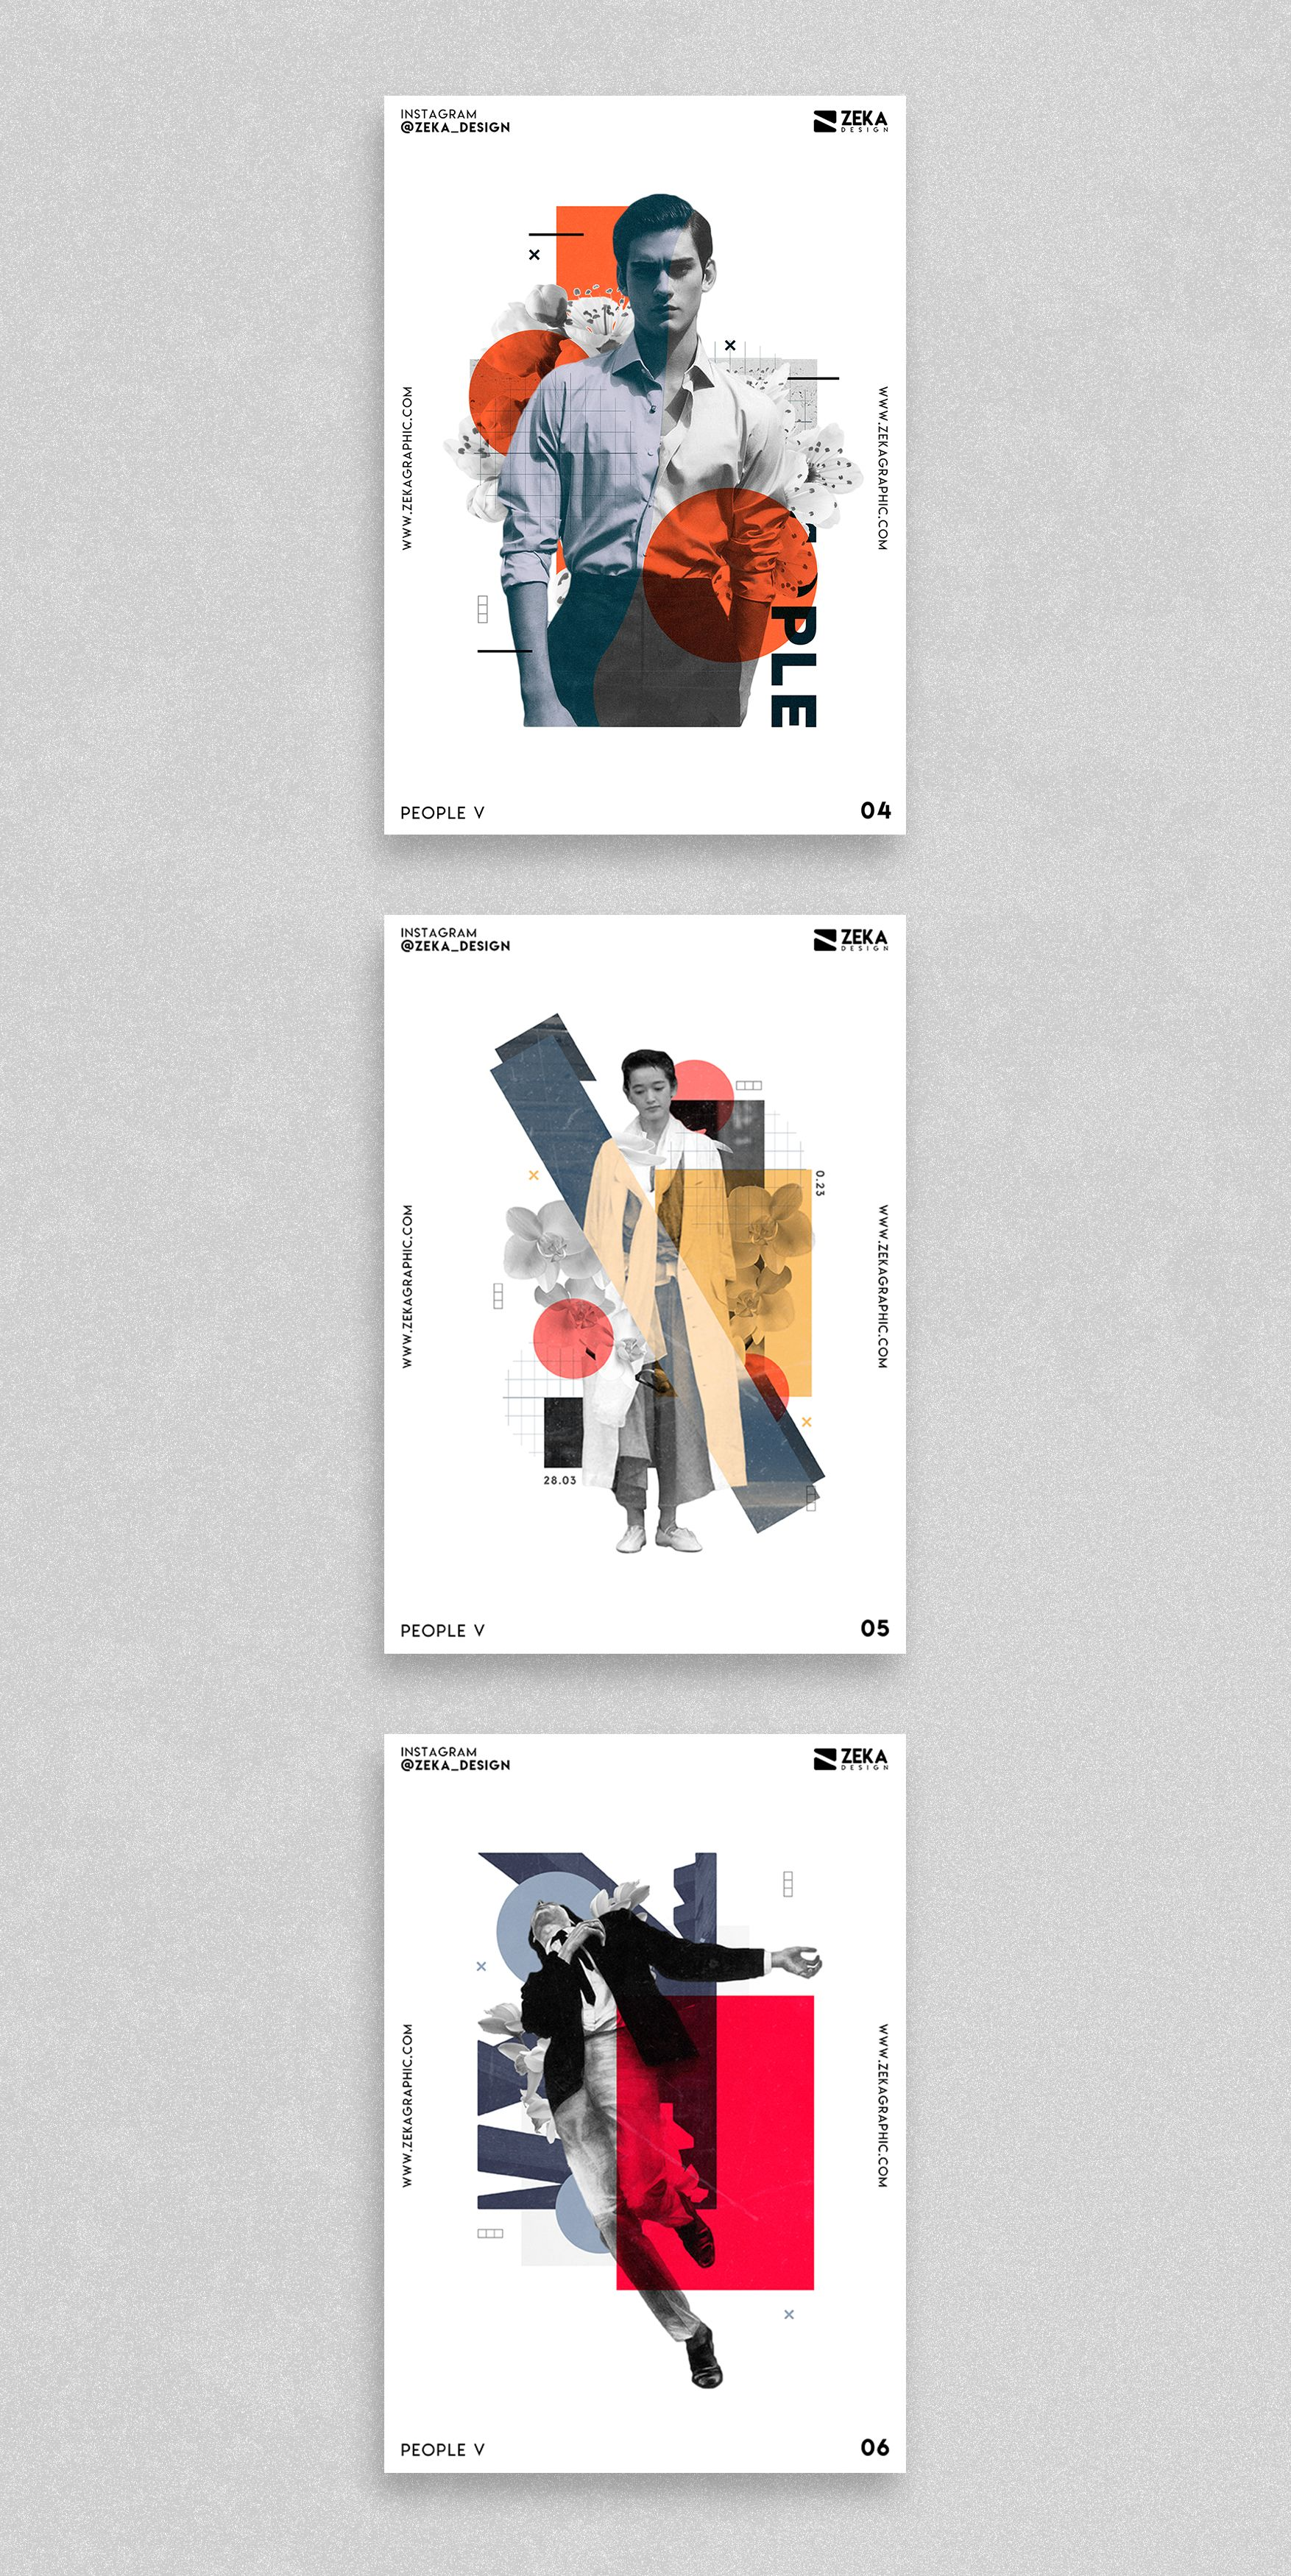 People Poster Design Series Poster Art And Graphic Design Project By Zeka Design In 2020 Graphic Design Layouts Graphic Design Projects Minimalist Poster Design